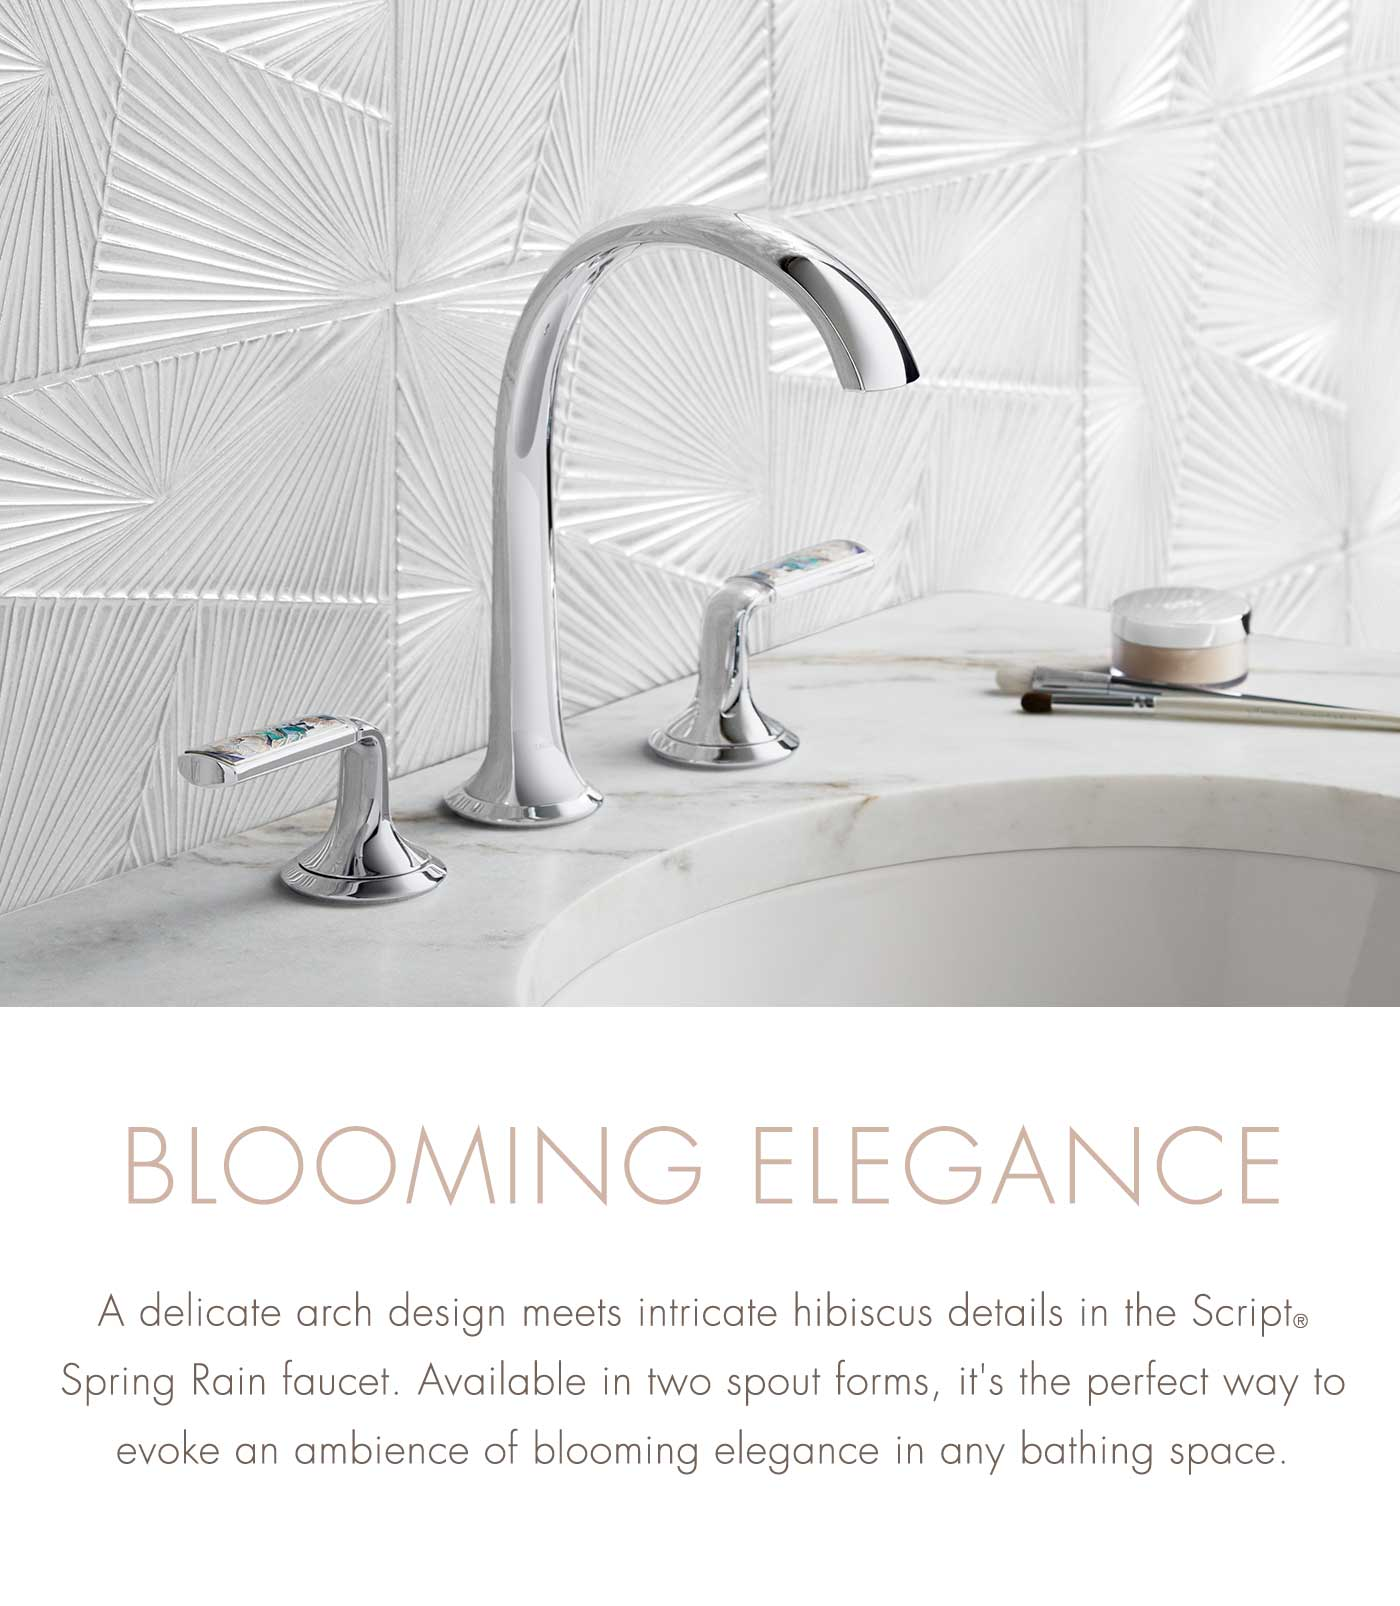 BLOOMING ELEGANCE   A delicate arch design meets intricate hibiscus details in the Script® Spring Rain faucet. Available in two spout forms, it's the perfect way to evoke an ambience of blooming elegance in any bathing space.